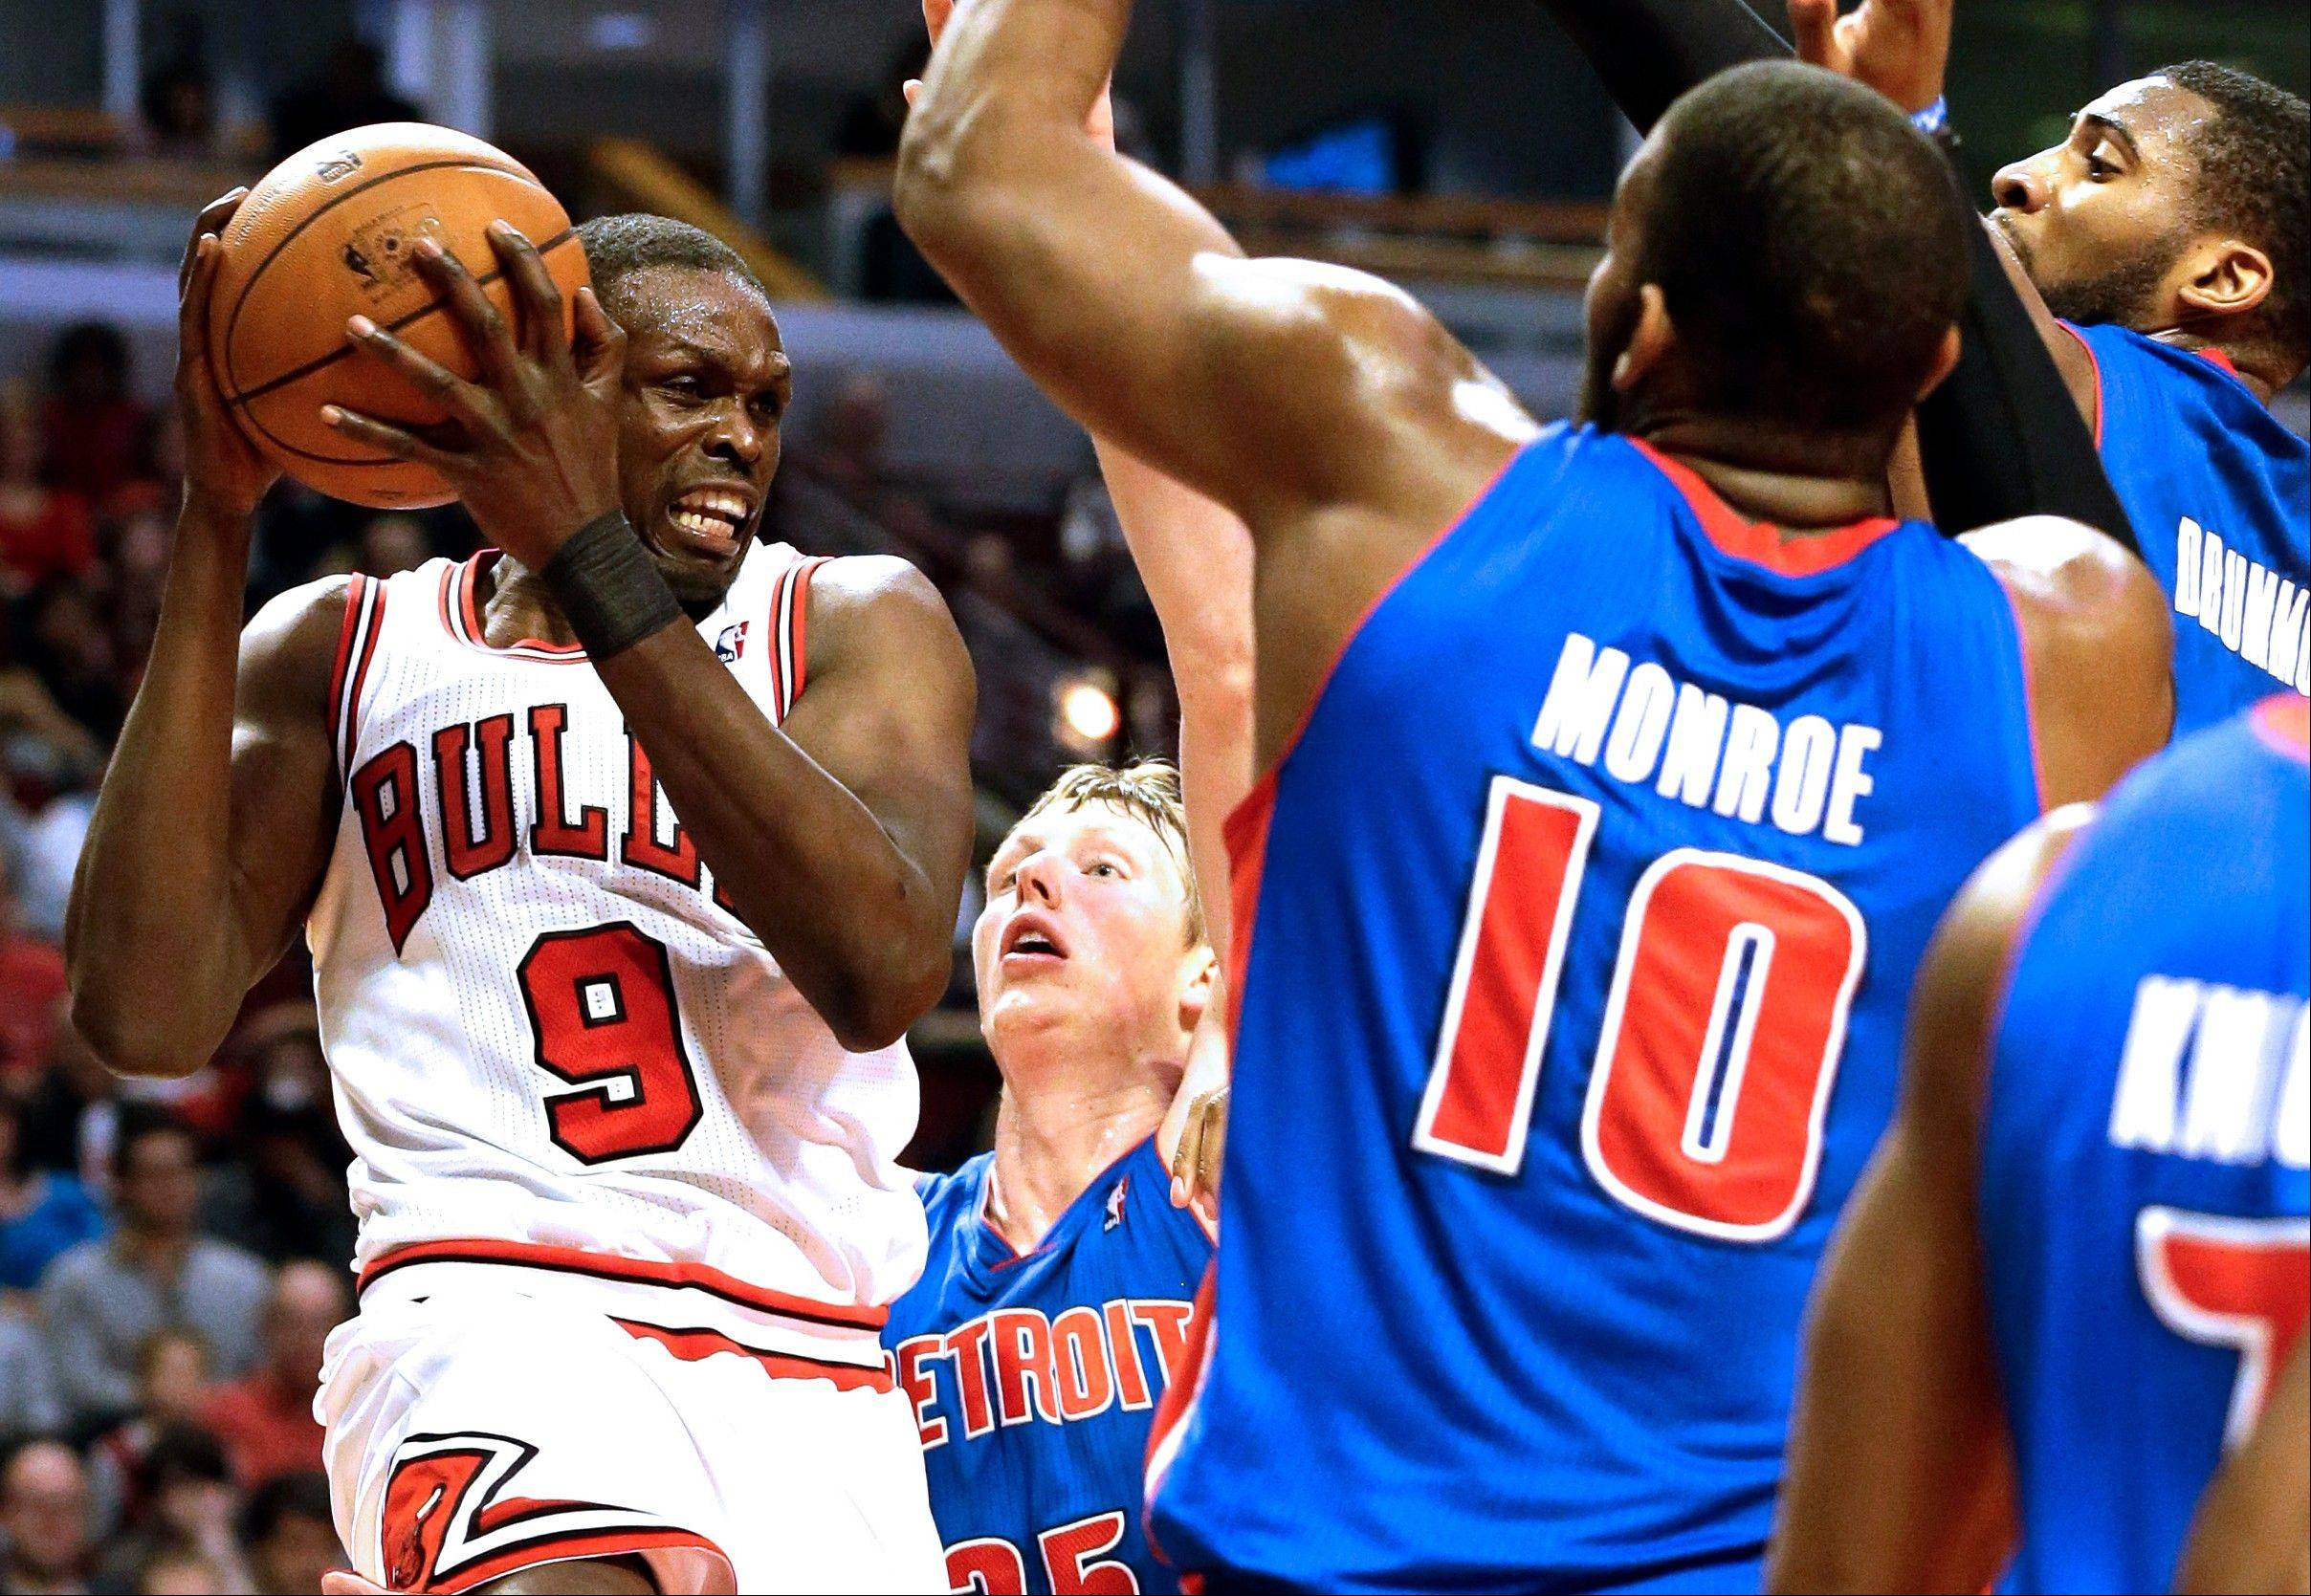 Bulls forward Luol Deng, left, drives to the basket against Detroit Pistons defenders including Greg Monroe during the second half of an NBA basketball game in Chicago on Sunday, March 31, 2013. The Bulls won 95-94.